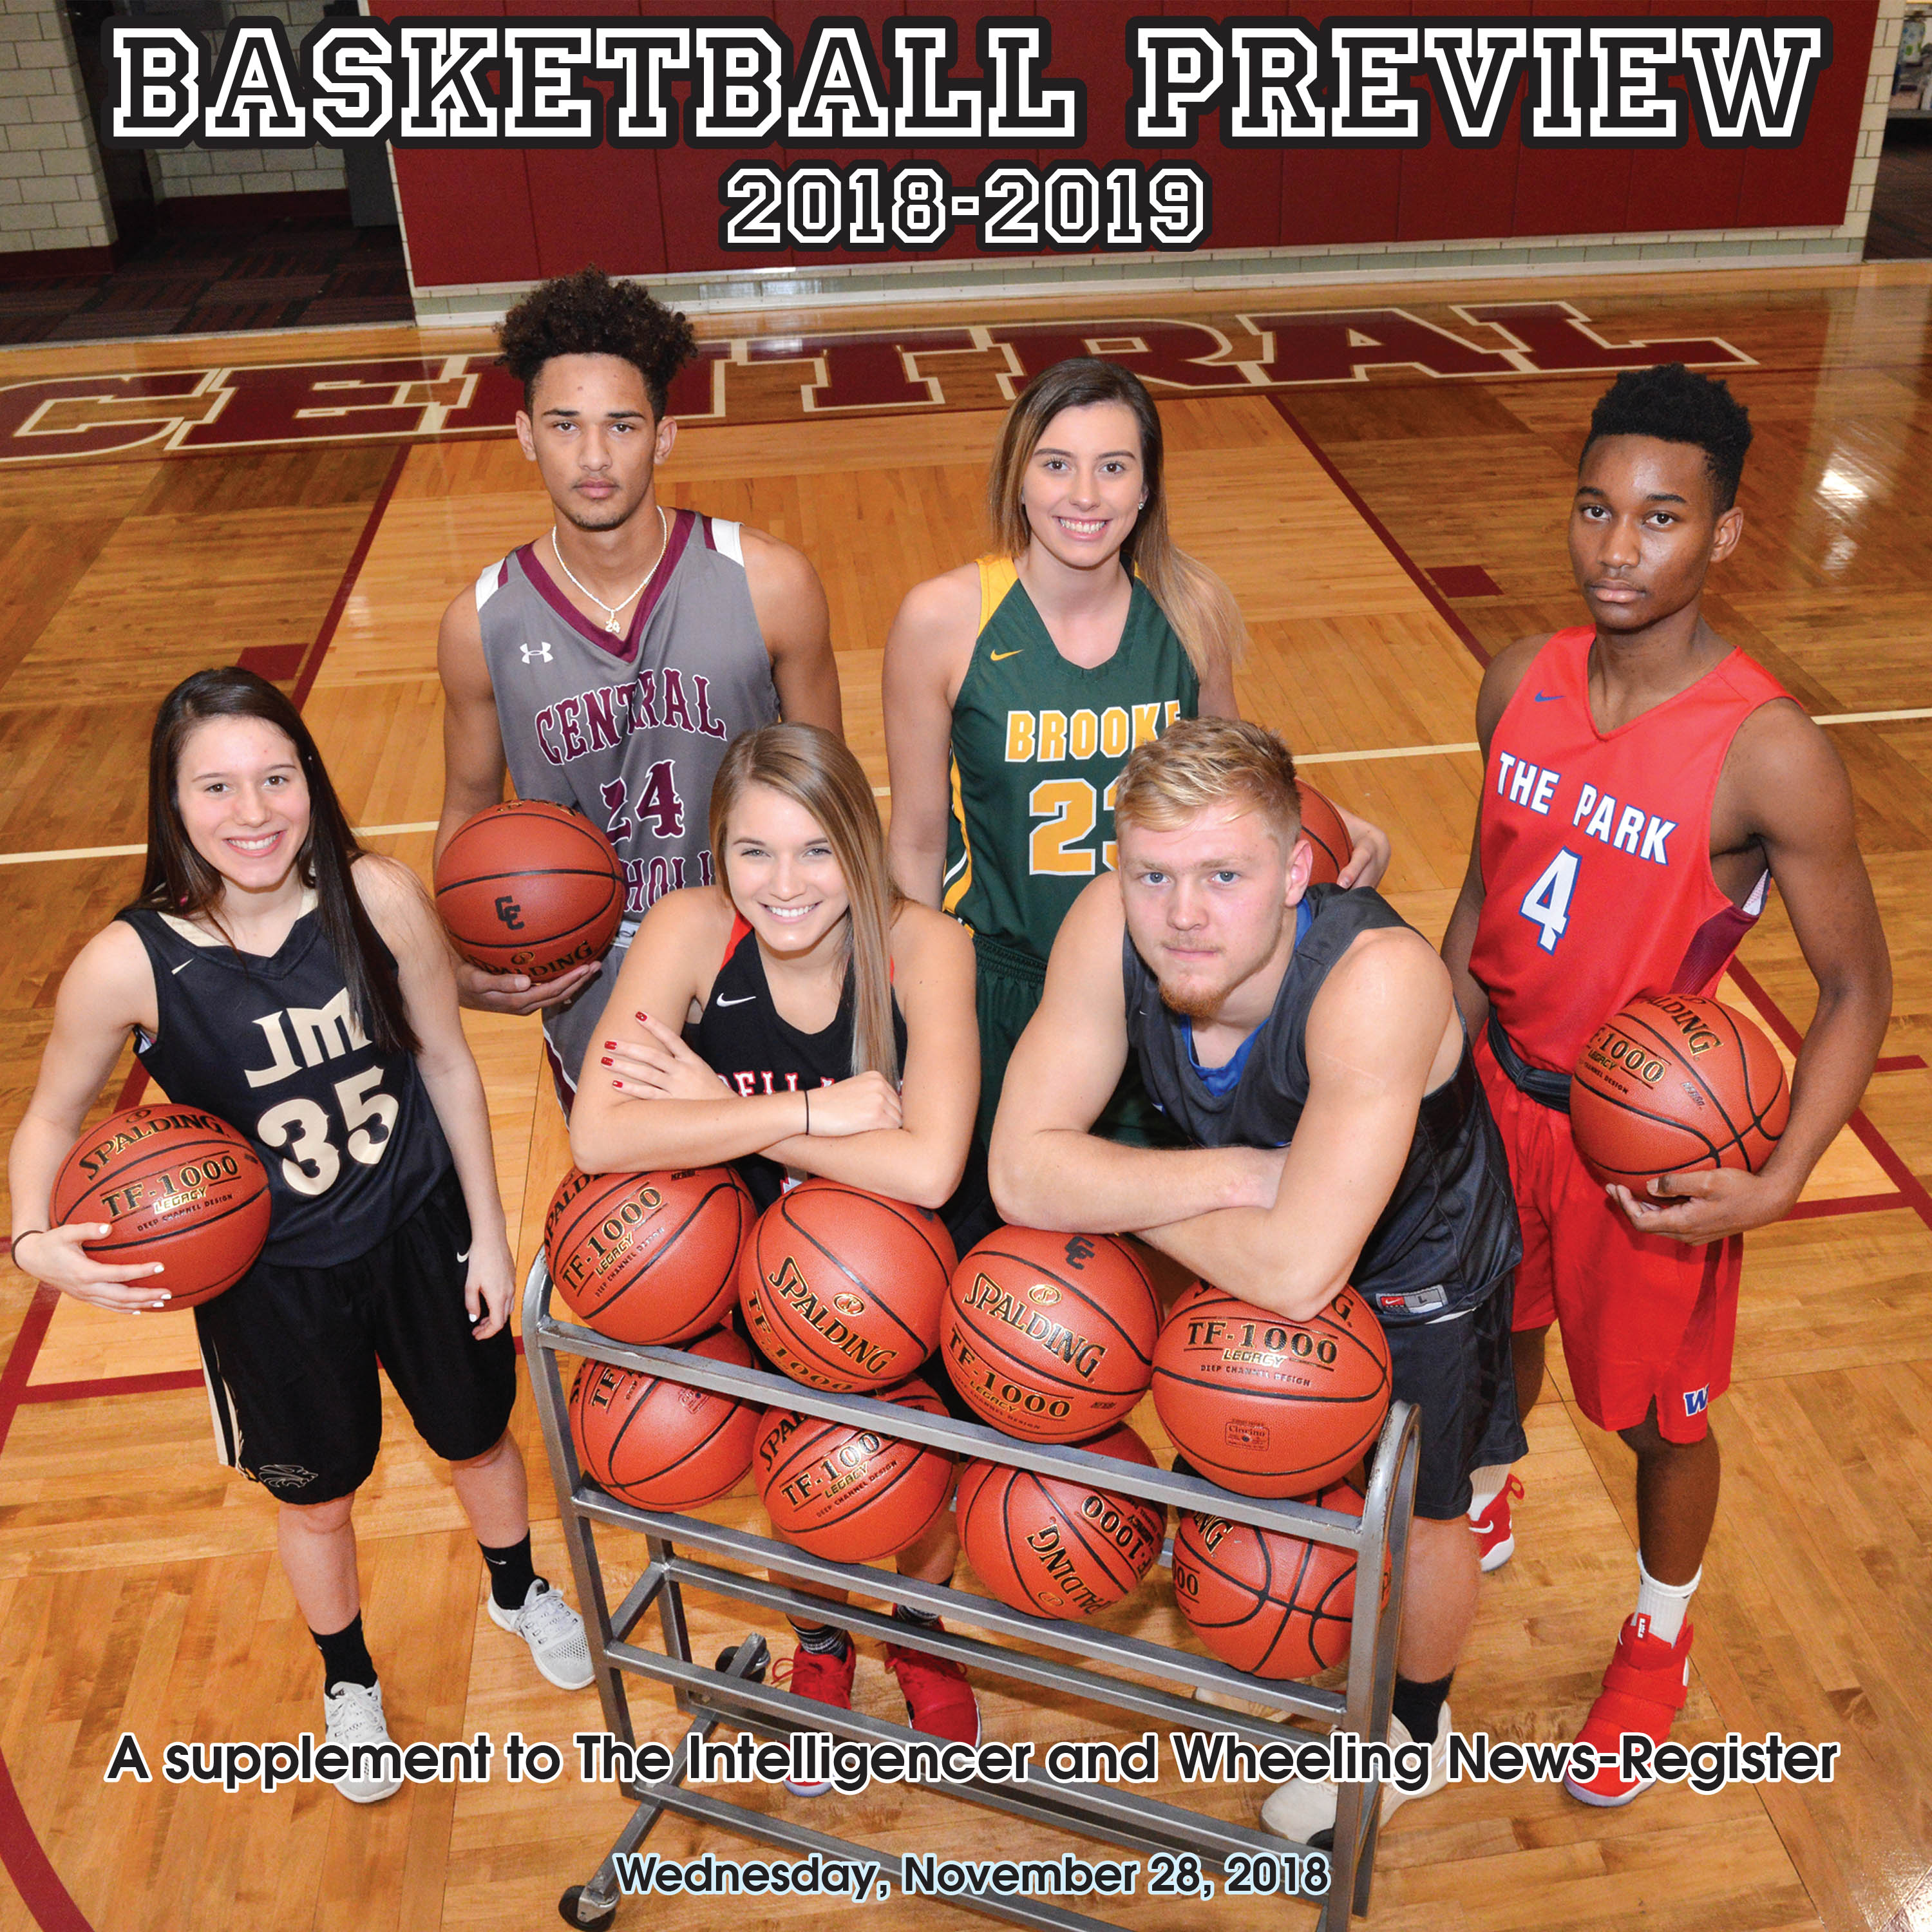 Basketball Preview 2018